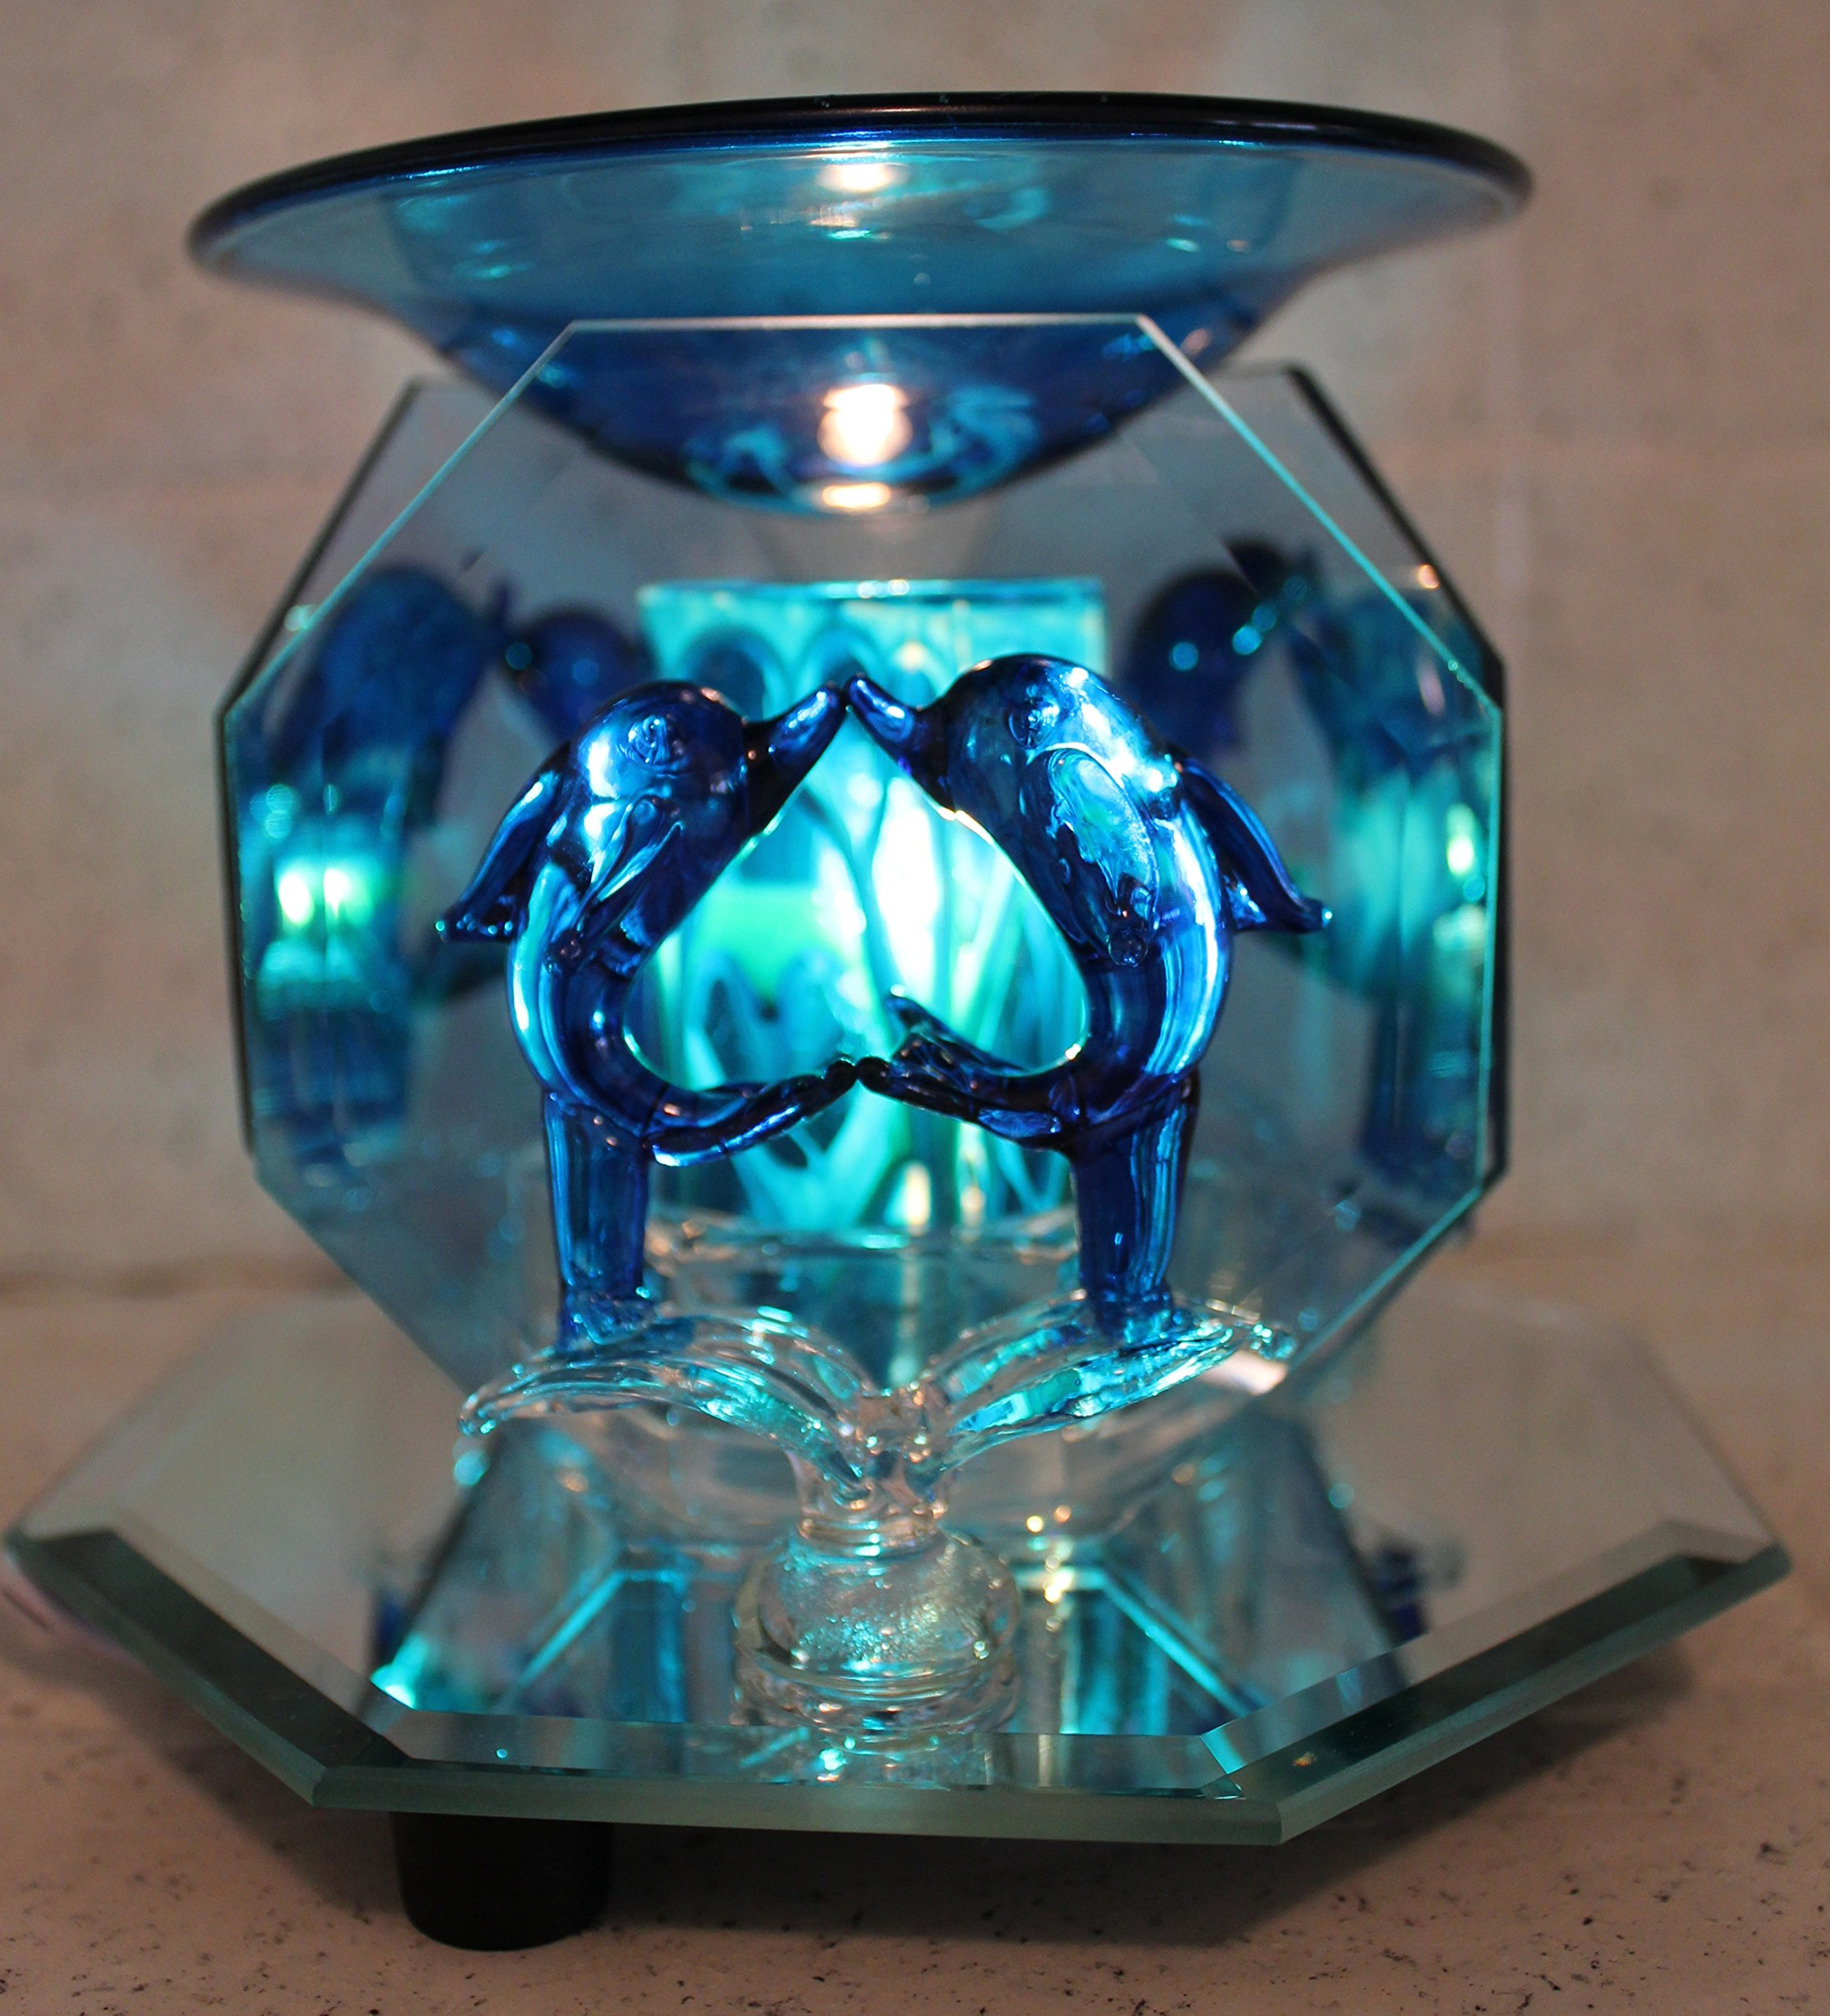 Electric Oil Warmer Tart Burner 2 Kissing Dolphins, 3 Sided Mirror, Dark Blue by Aroma Lamps (Image #1)